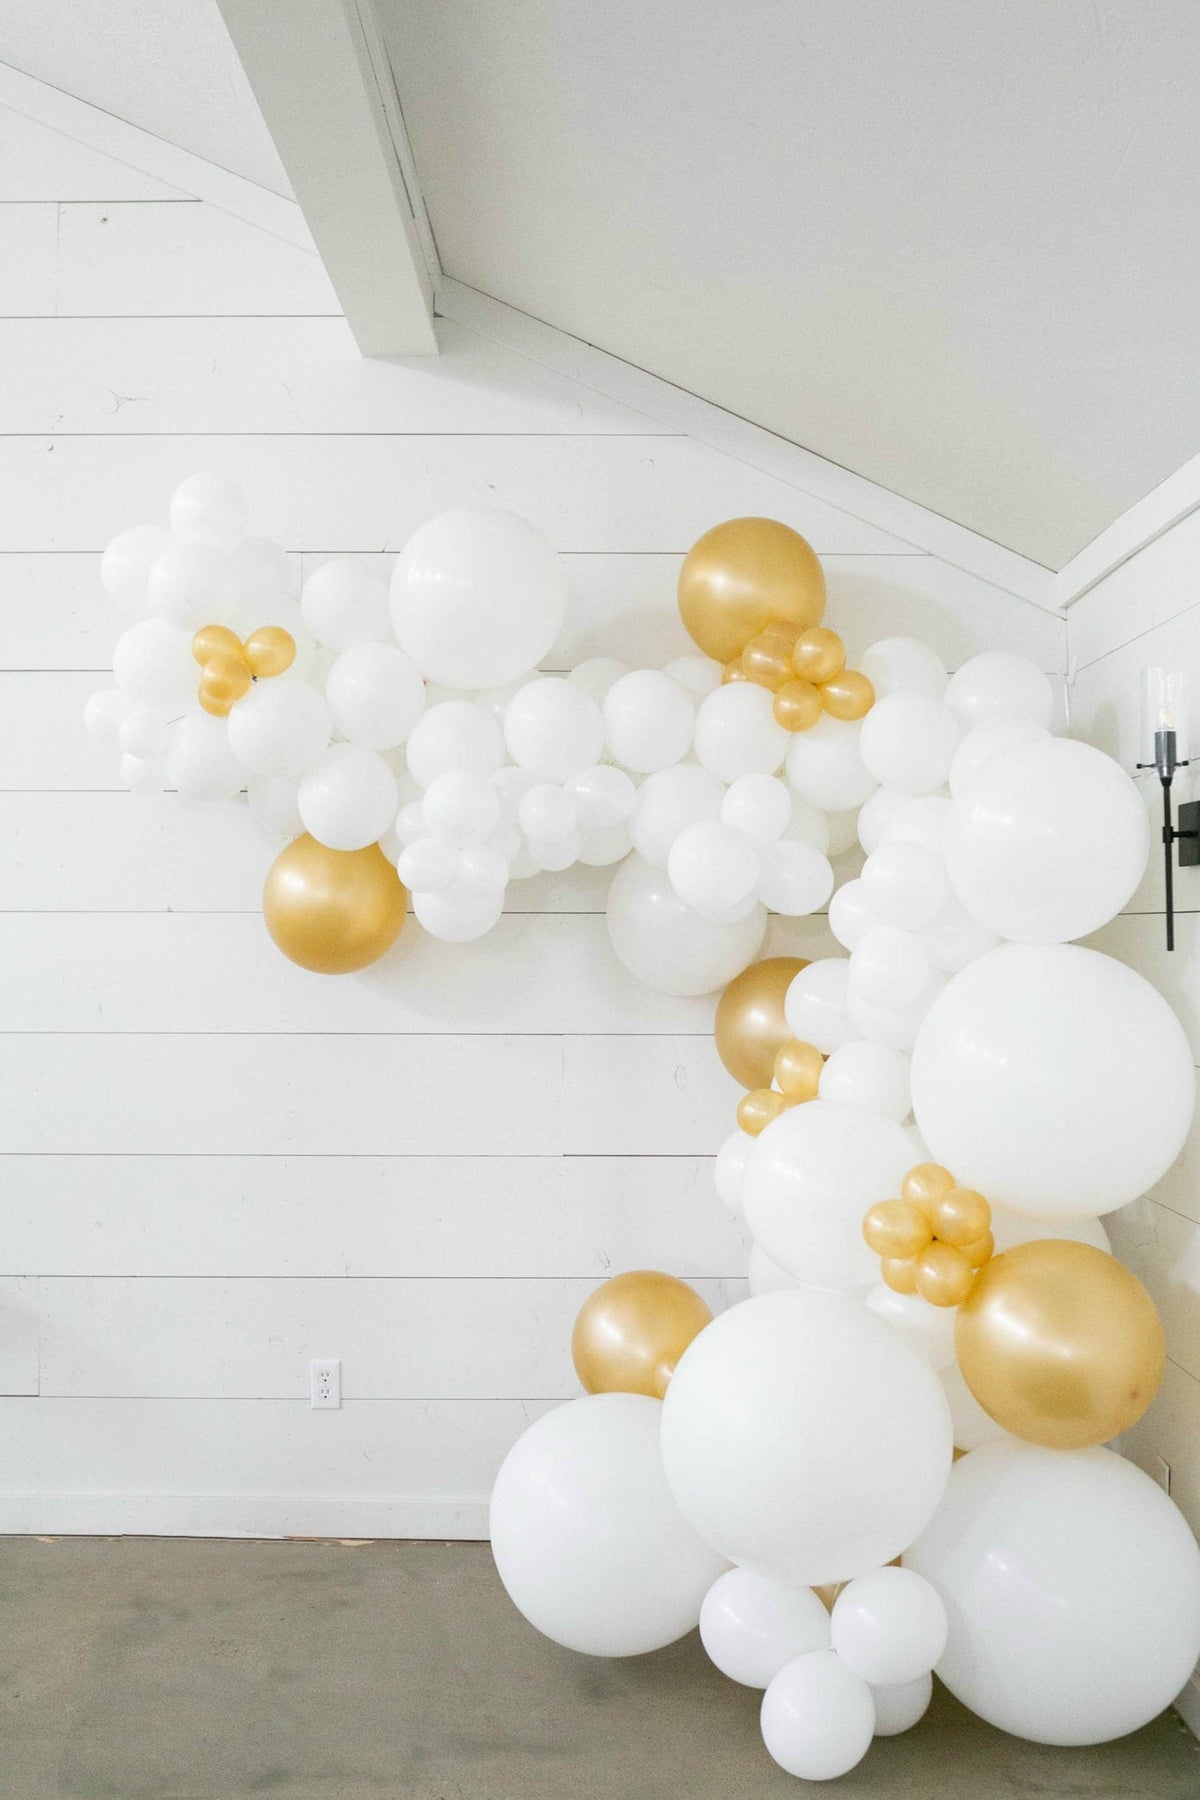 25 Ft Diy Balloon Garland Kit With White Gold Balloons Balloons And Weights